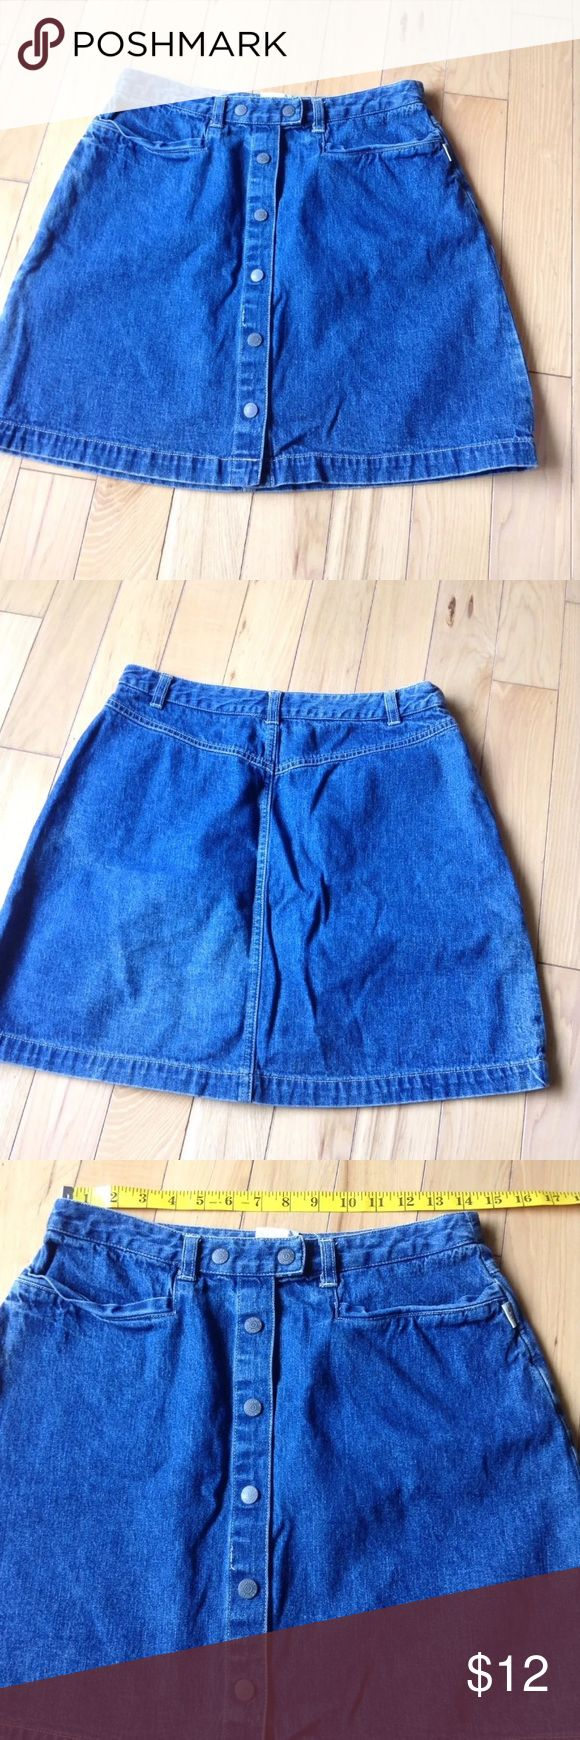 Vintage esprit Button Up 90s grunge Jean skirt Please see photos for all measure and detail prior to purchase. Like the item but not the price? I accept reasonable offers! This item was pre owned and gently worn. It comes from a smoke free home. There are no holes, rips, tears or stains to note. Fast shipping! Buy with confidence! Vintage Skirts Pencil